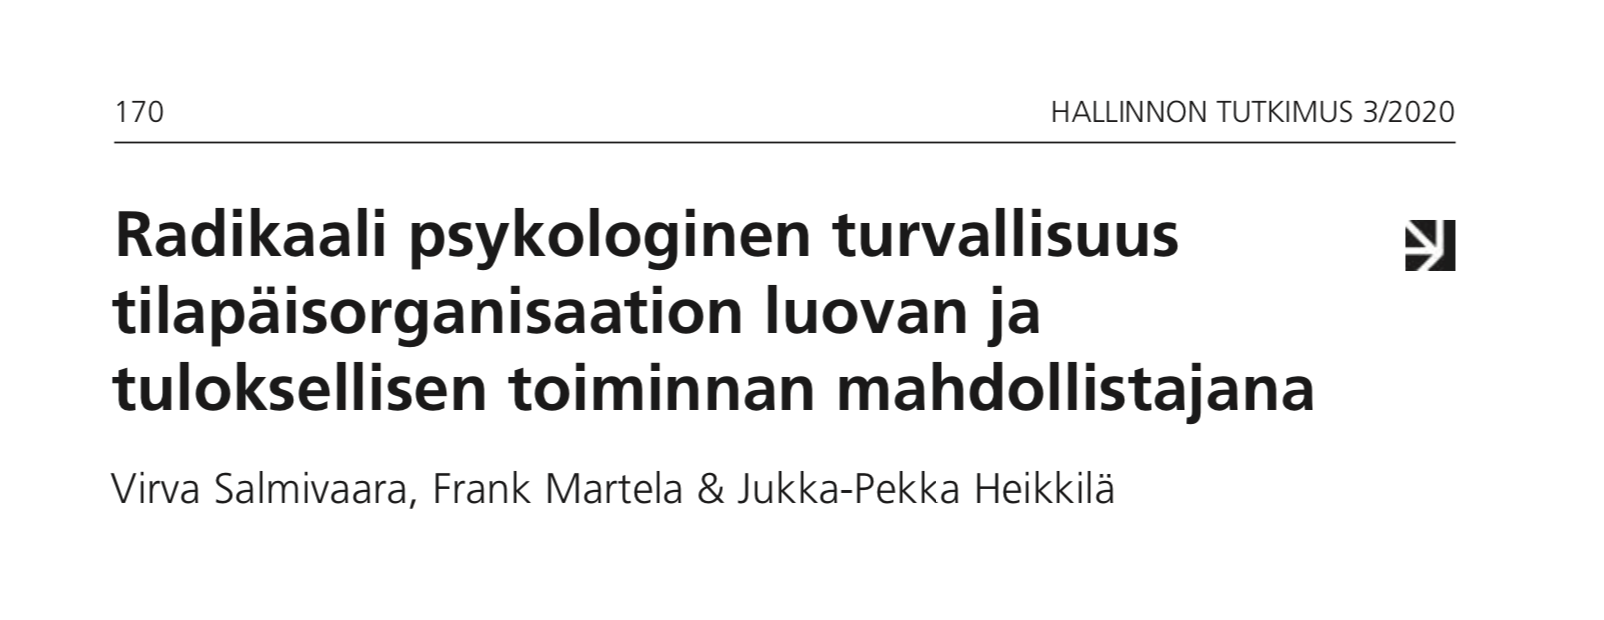 A peer reviewed article on radical psychological safety in temporary organisations in Hallinnon Tutkimus